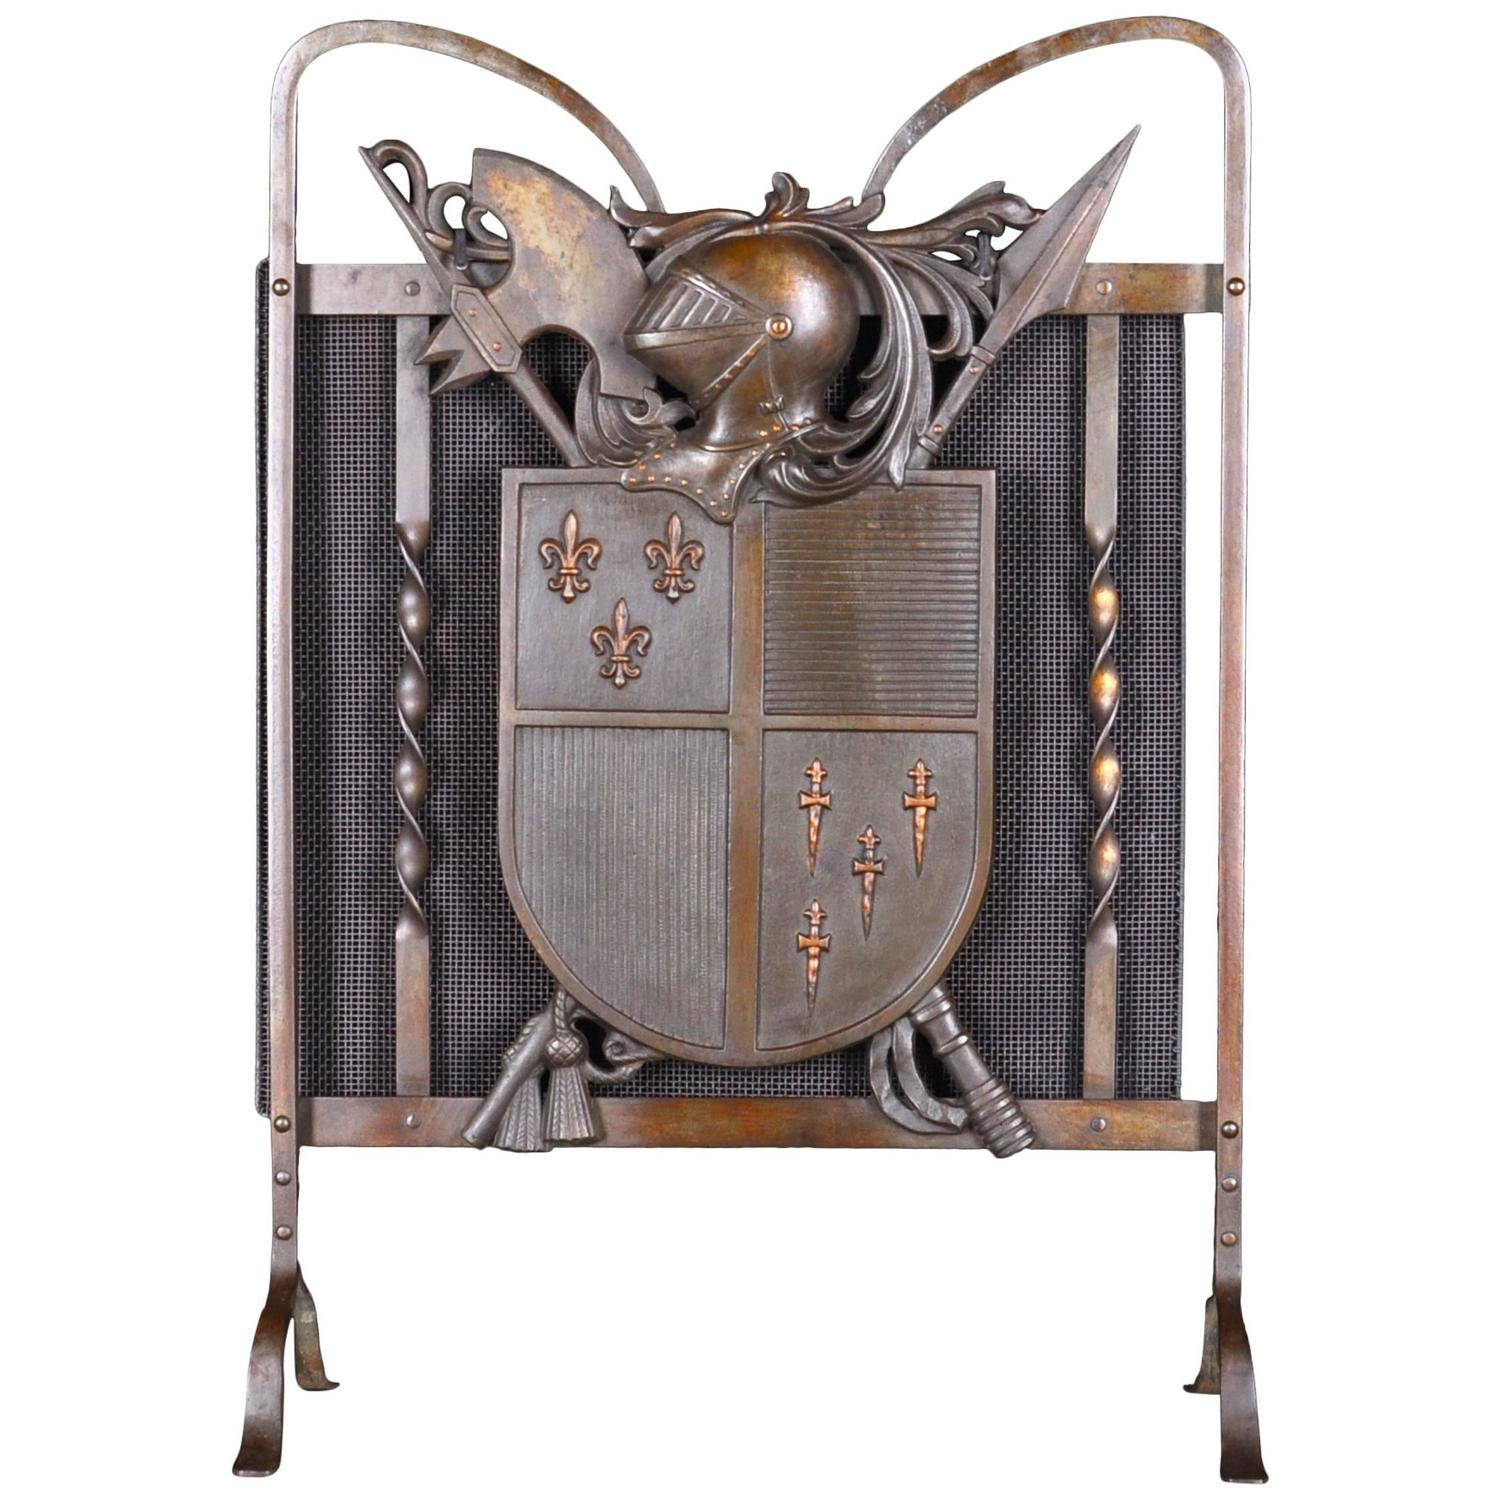 armorial bronze and iron fire guard with medieval trophies and